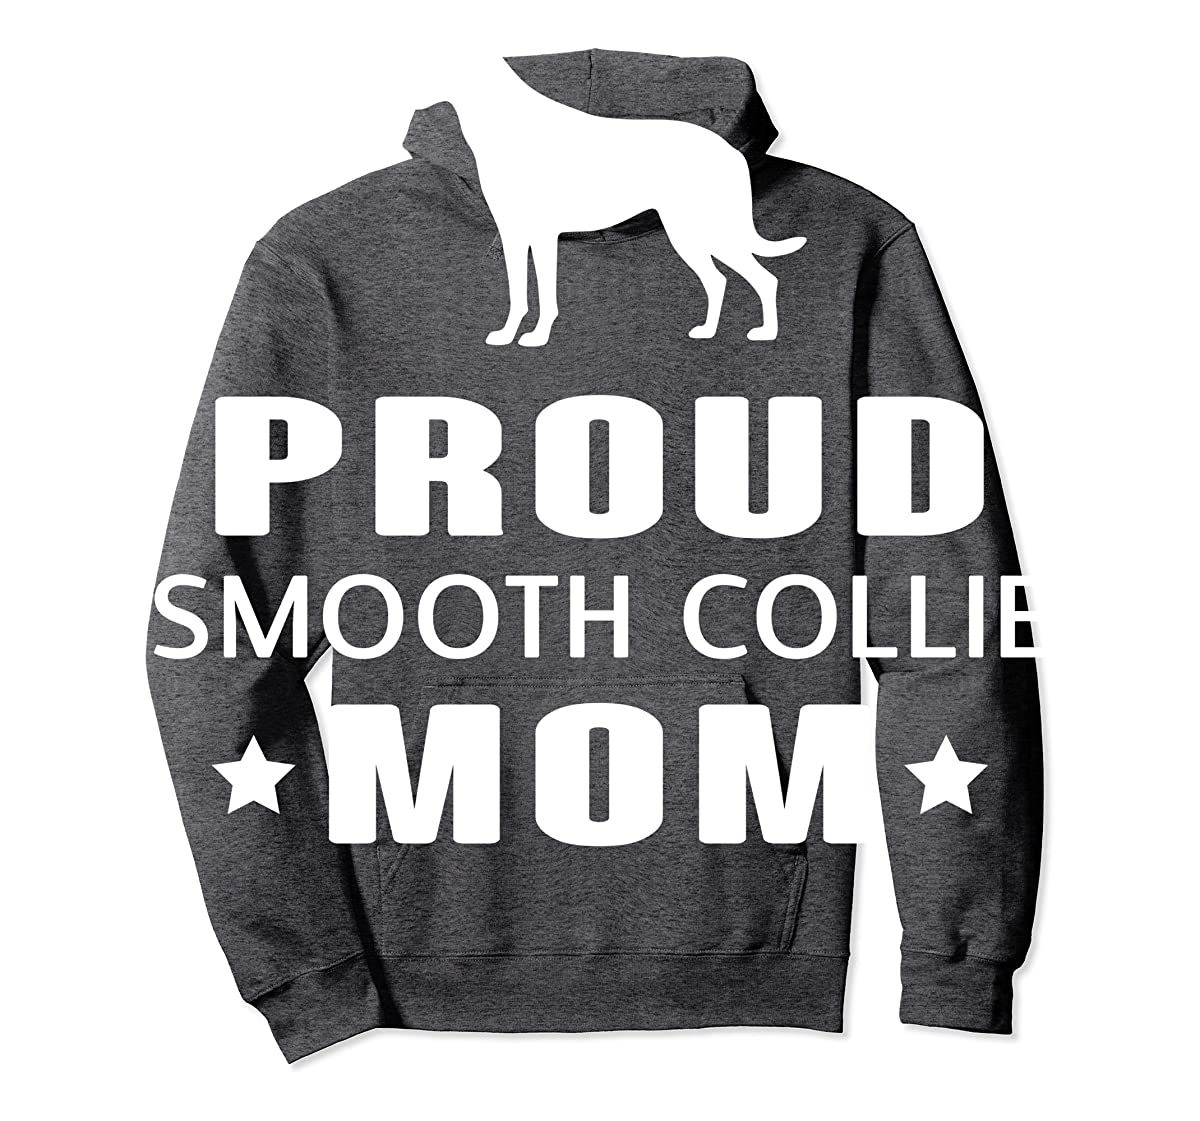 Smooth Collie Funny T-Shirts For Dog Lovers-Hoodie-Dark Heather